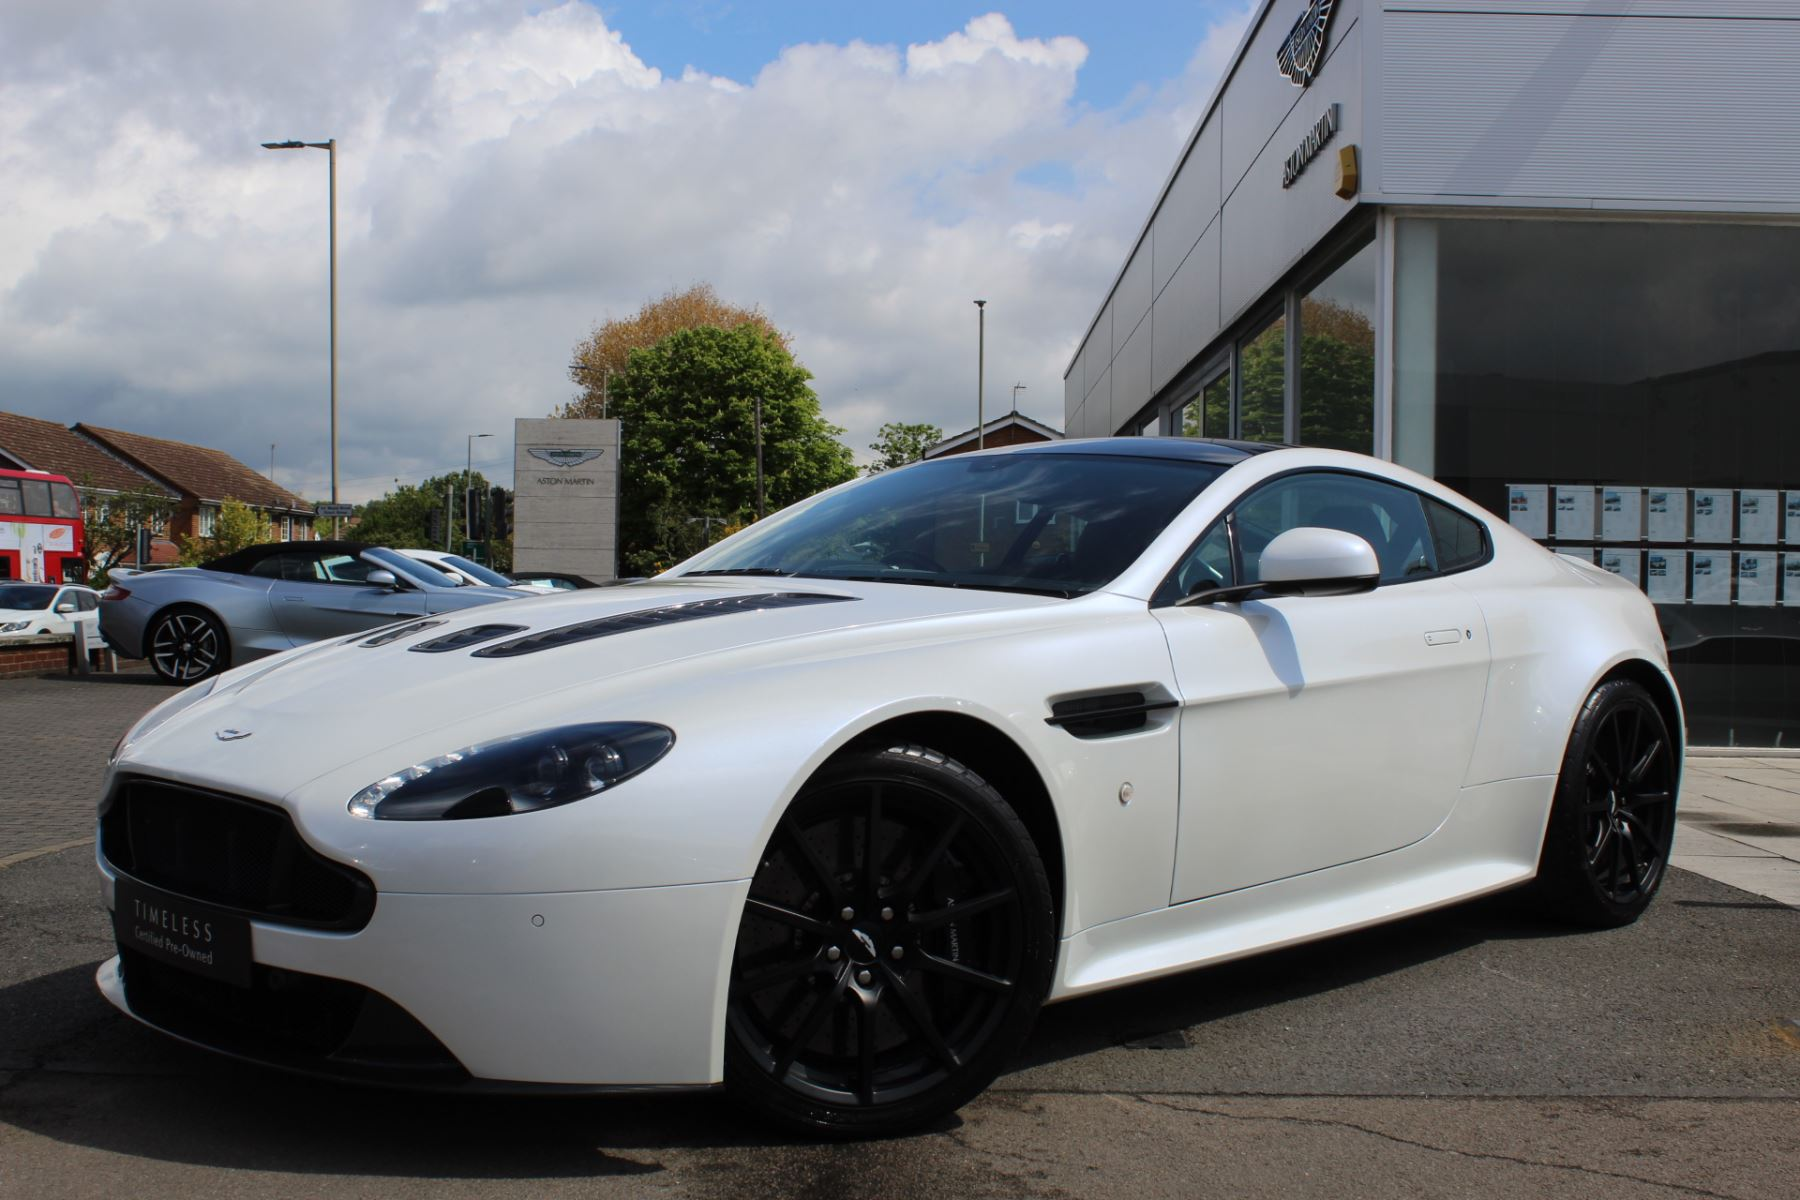 Aston Martin V12 Vantage S Coupe S 2dr Sportshift III 5.9 Automatic 3 door Coupe (2015.25) image